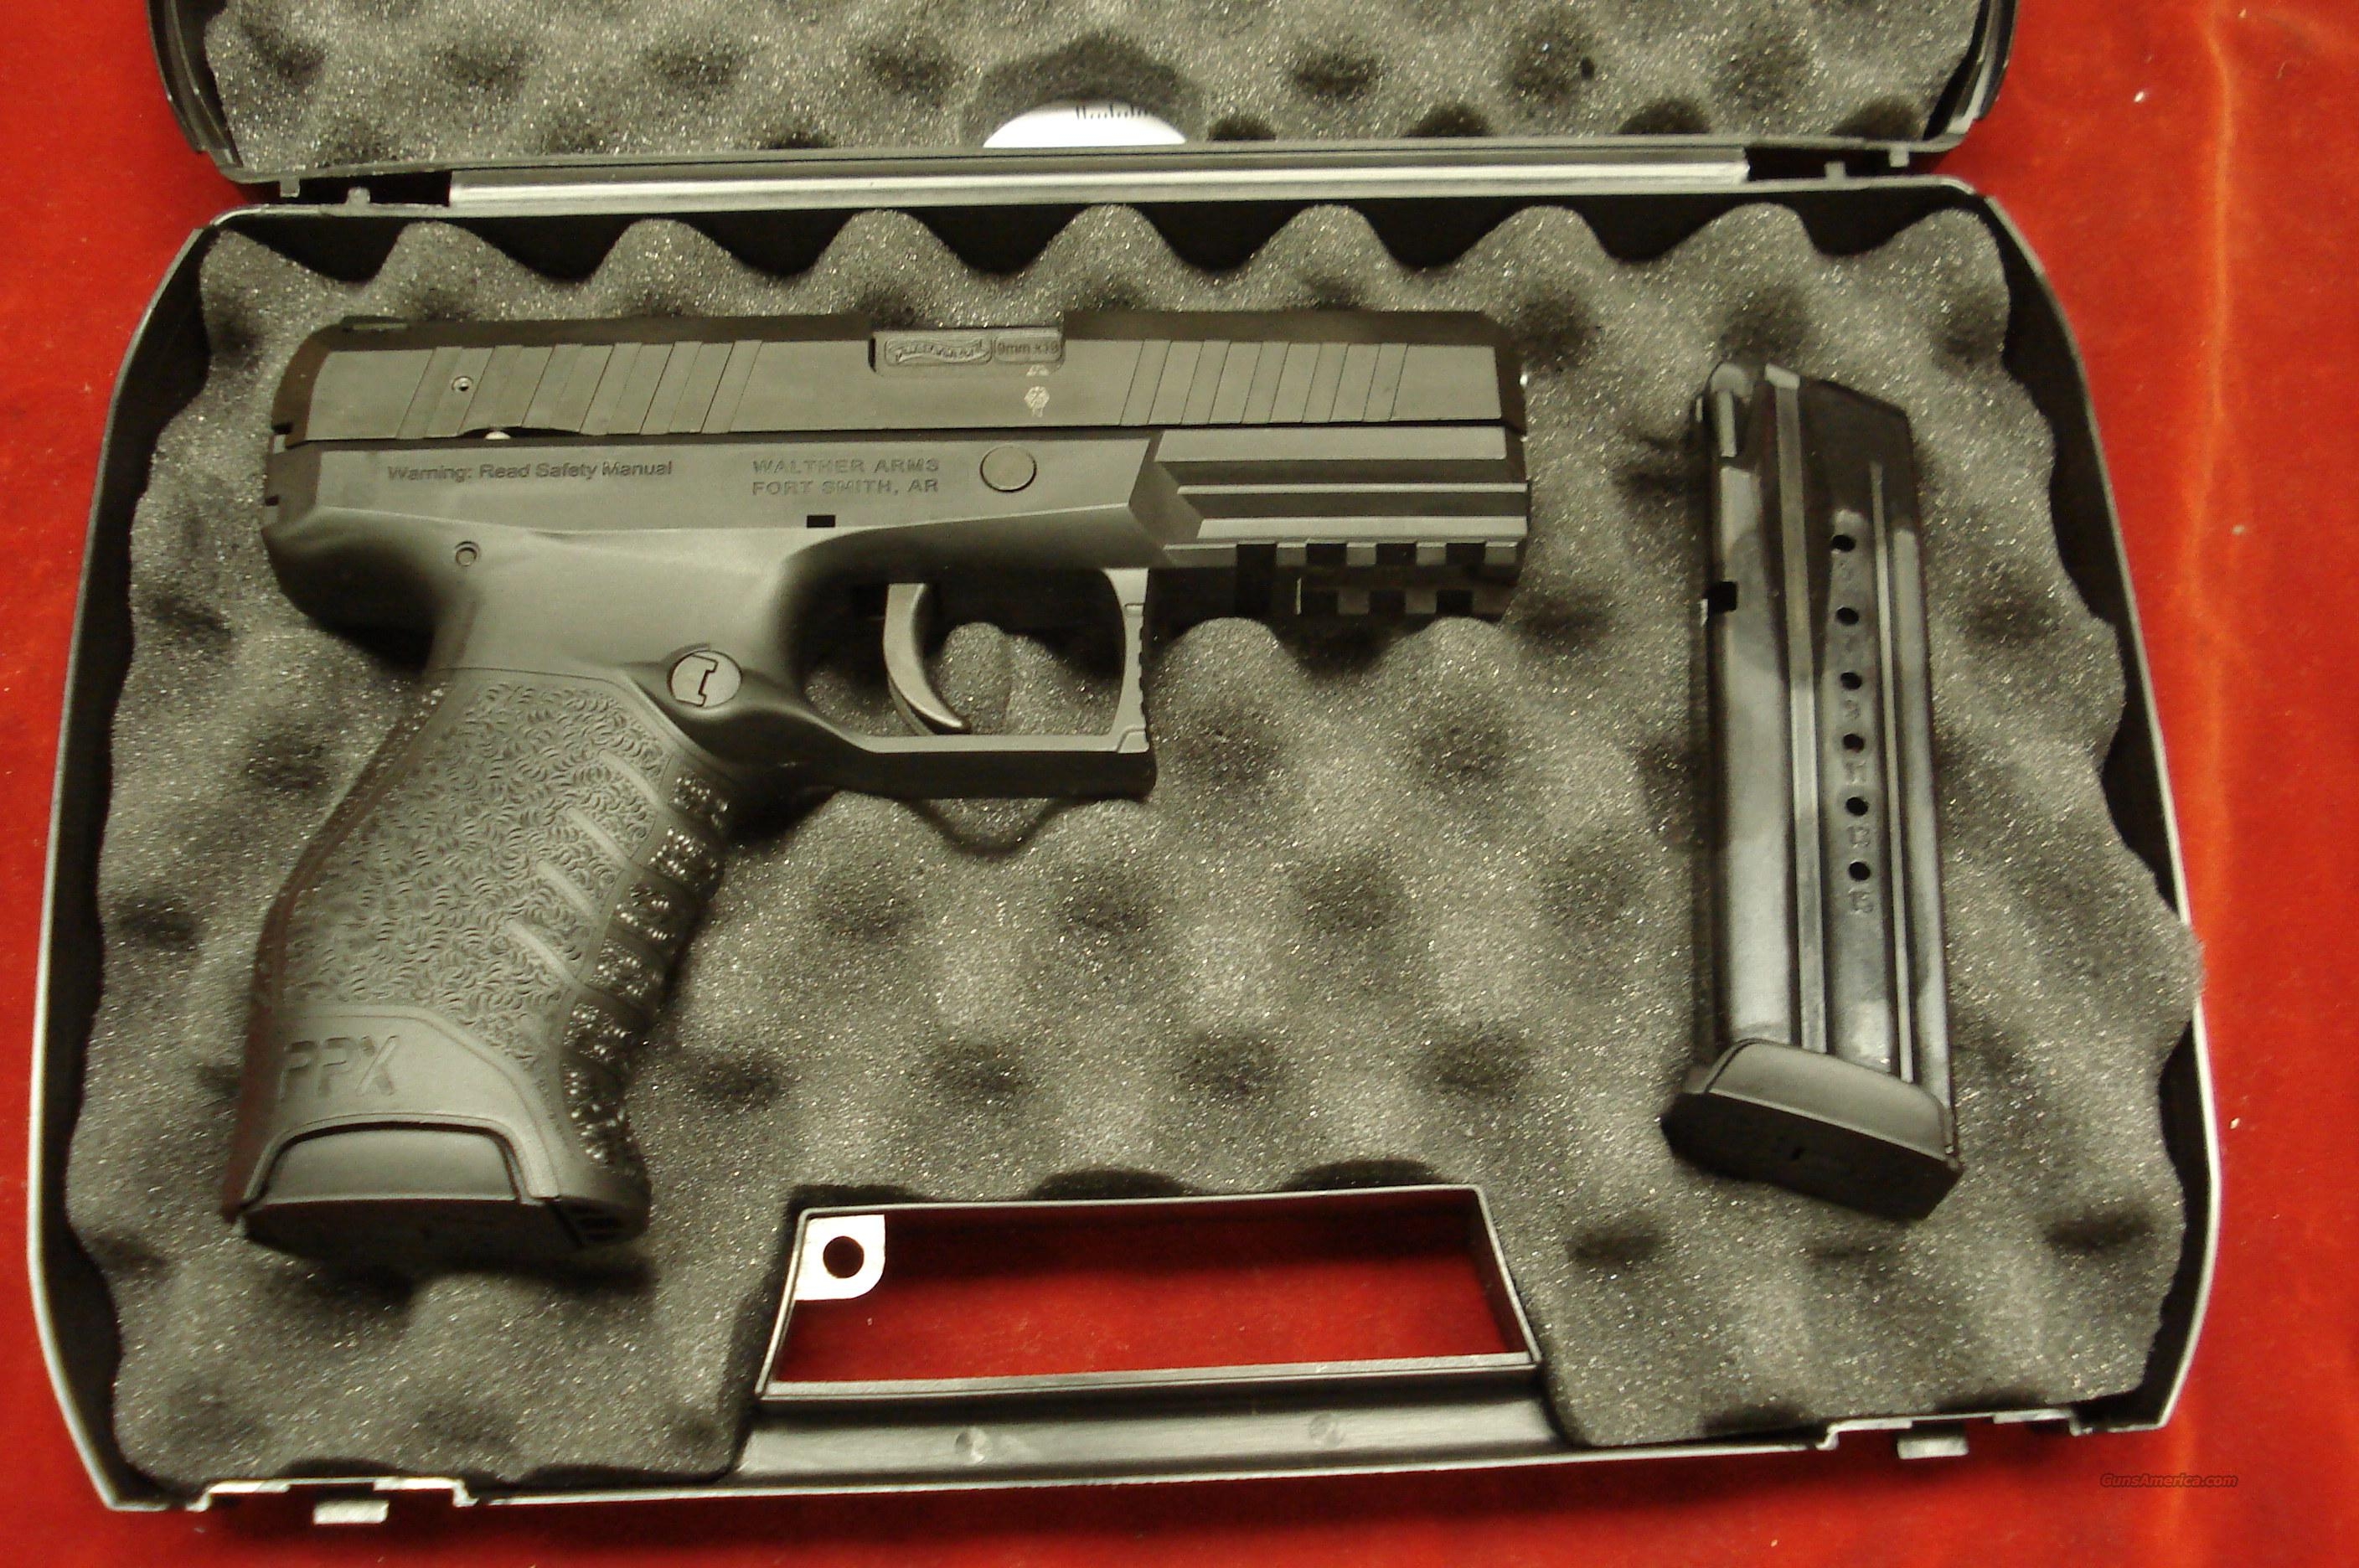 WALTHER PPX M1 9MM HIGH CAPACITY NEW  Guns > Pistols > Walther Pistols > Post WWII > P99/PPQ